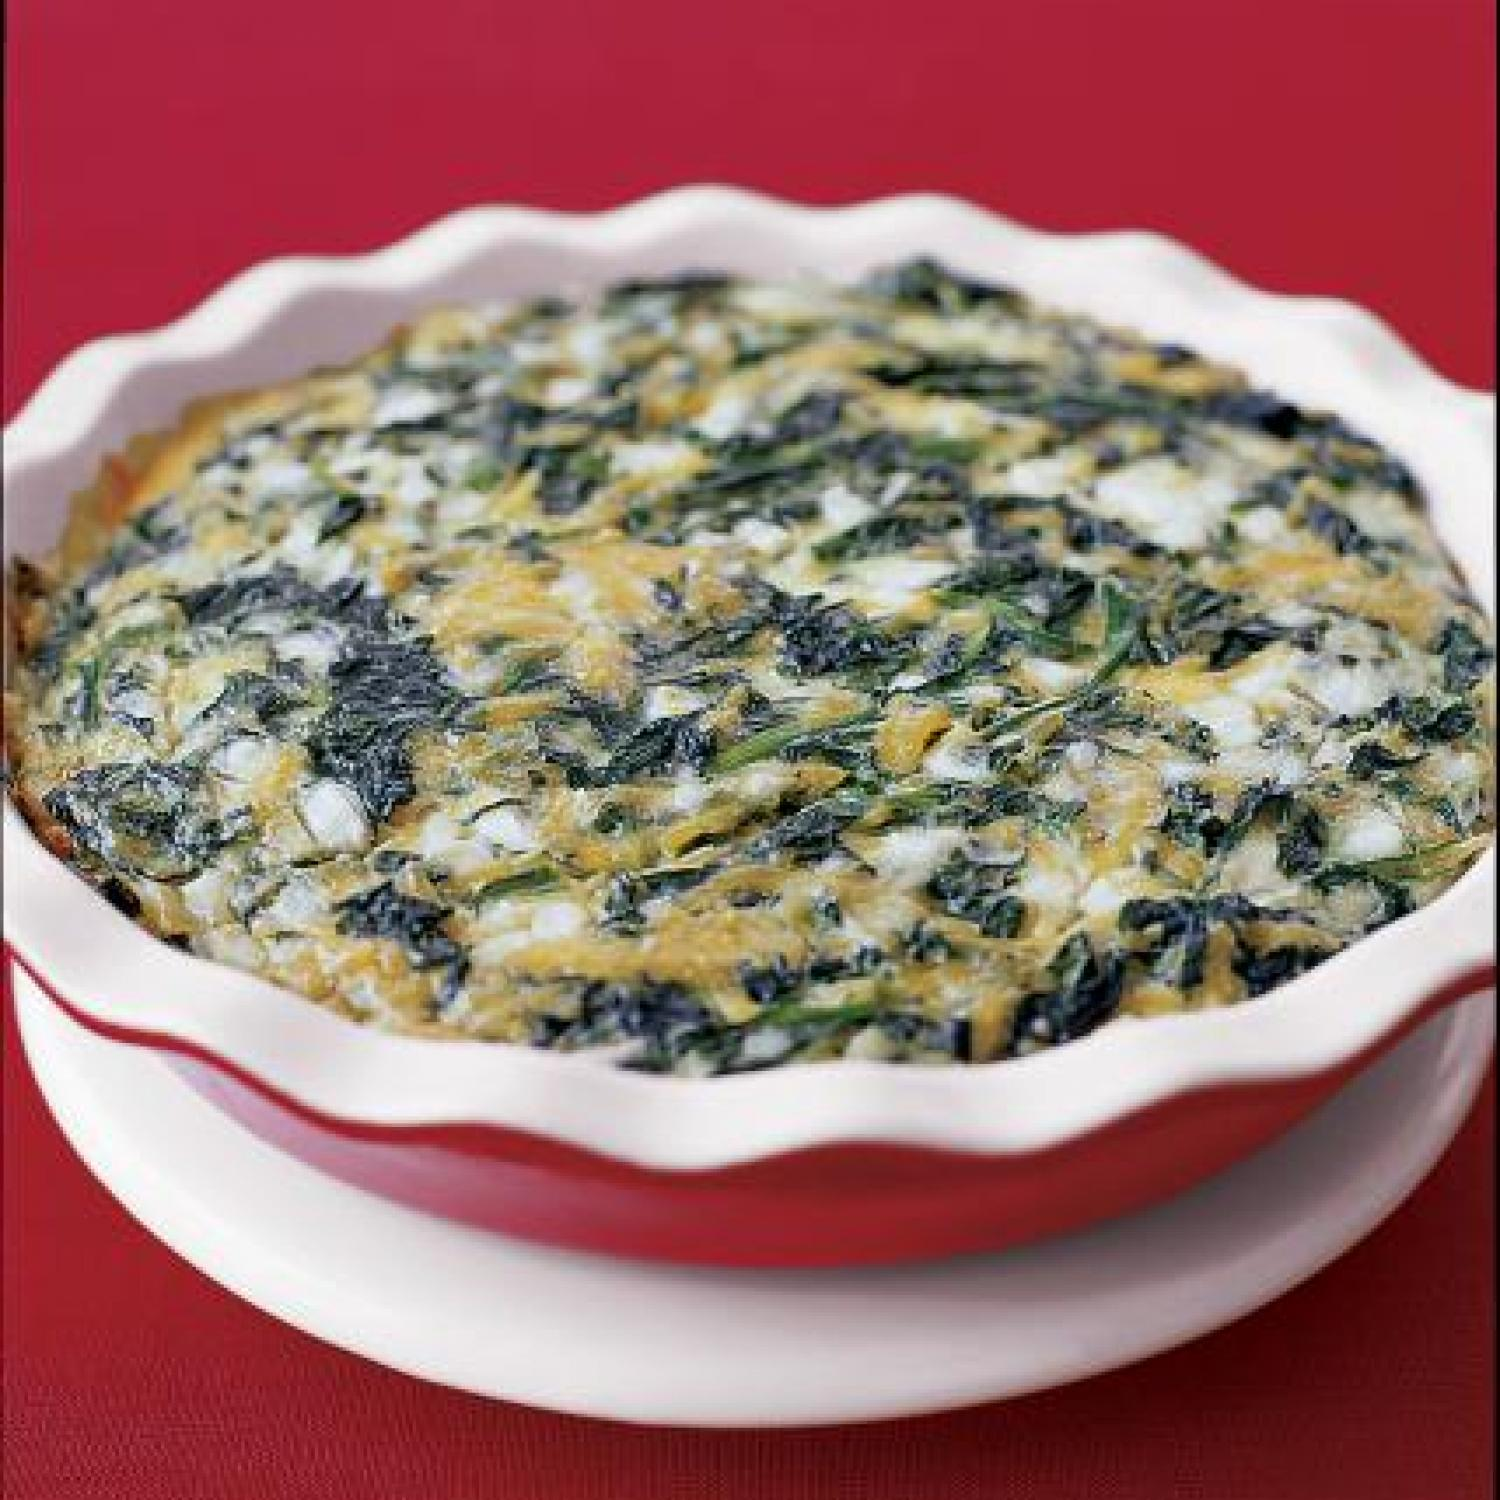 spinach and cheese casserole parenting rh parenting com spinach egg casserole with cottage cheese spinach rice casserole cottage cheese